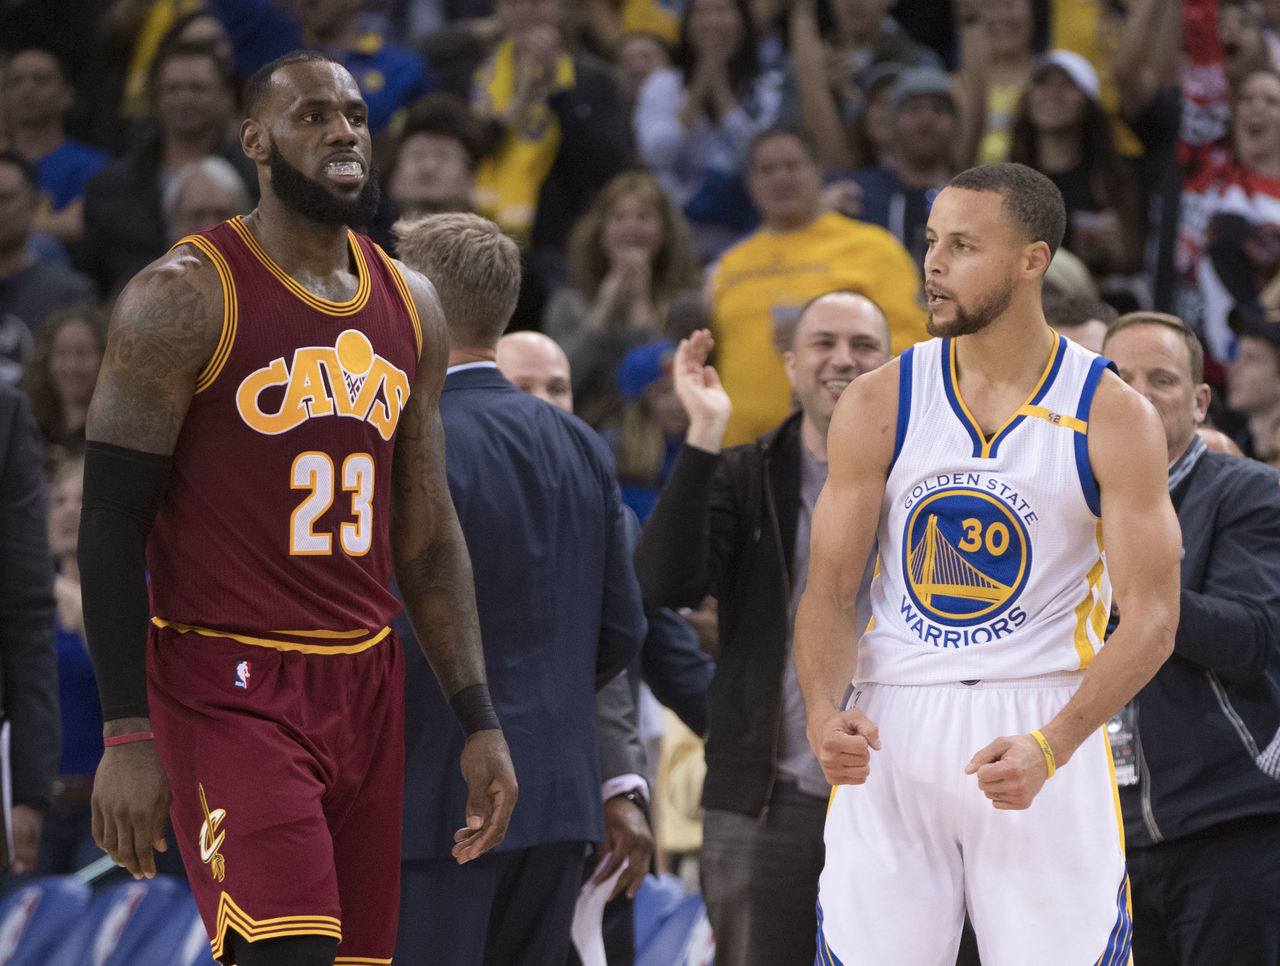 Cropped 2017 01 17t022047z 1311102201 nocid rtrmadp 3 nba cleveland cavaliers at golden state warriors